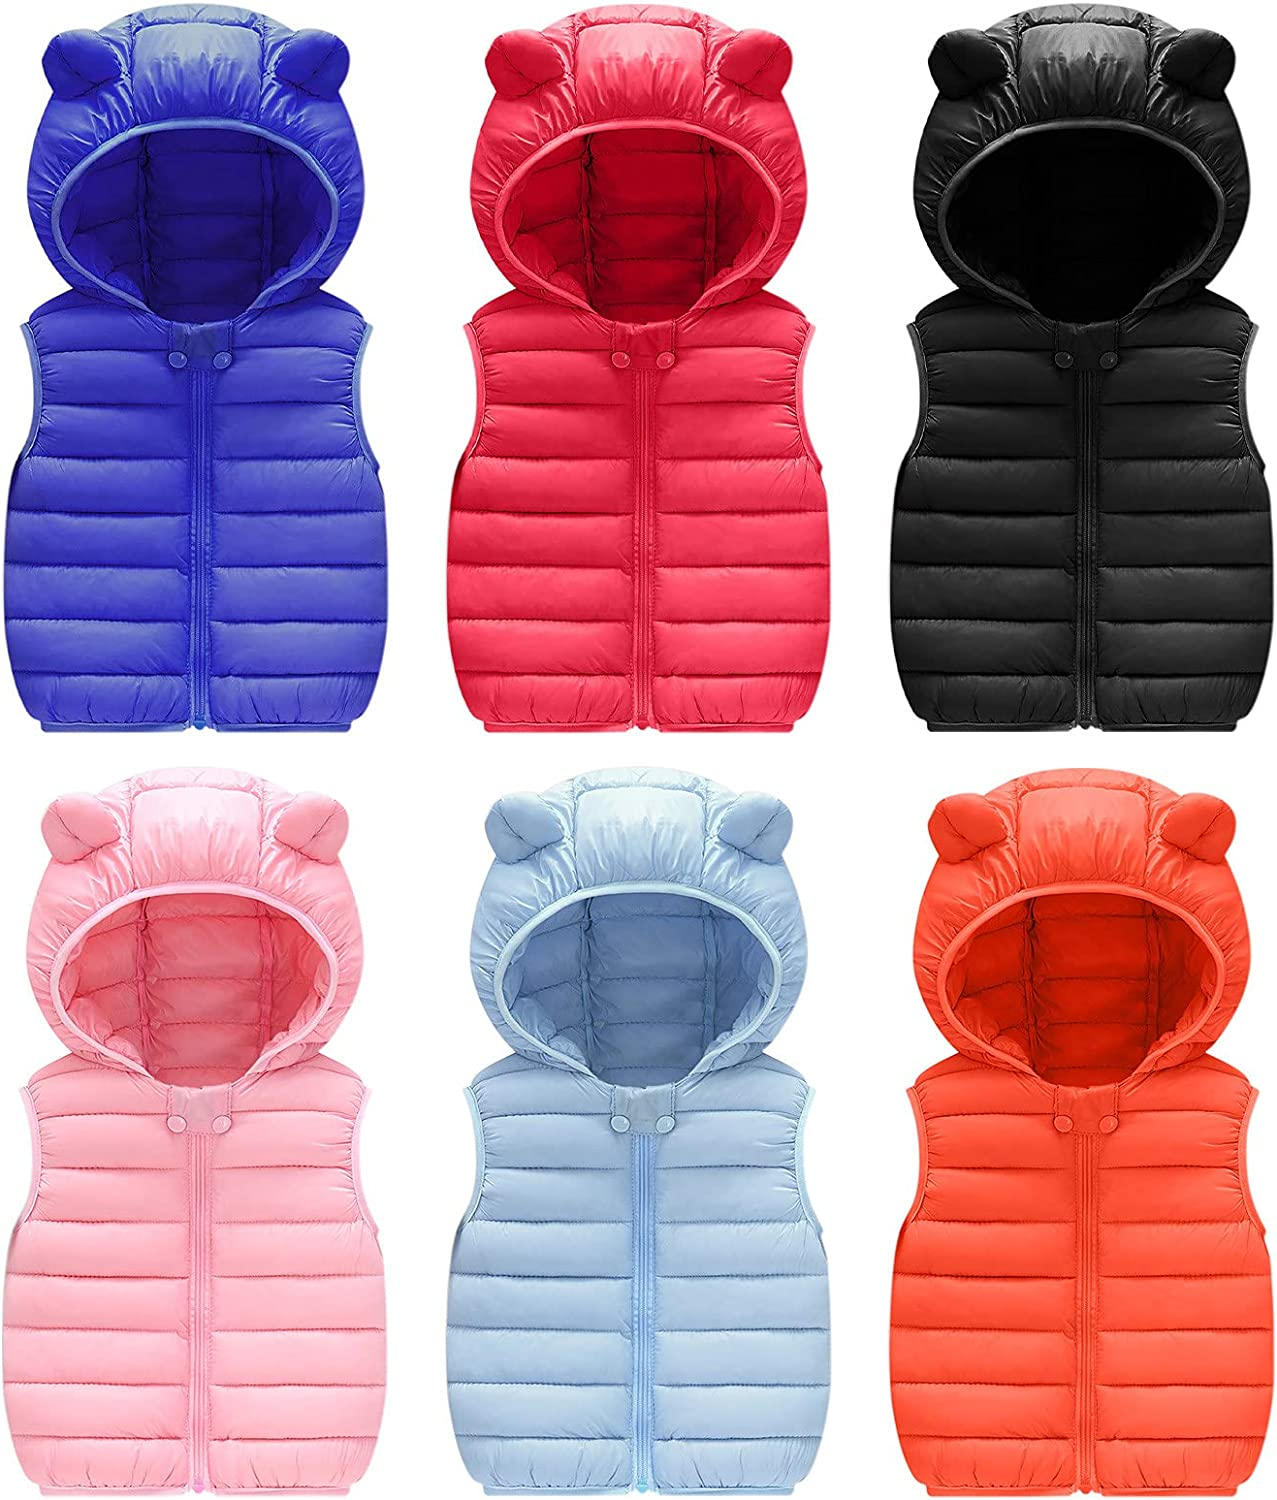 Toddler Baby Warm Vest Outerwear Clothes Unisex Kids Solid Ear Hooded Vest Outerwear Autumn Winter Baby Waistcoat: Clothing, Shoes & Jewelry